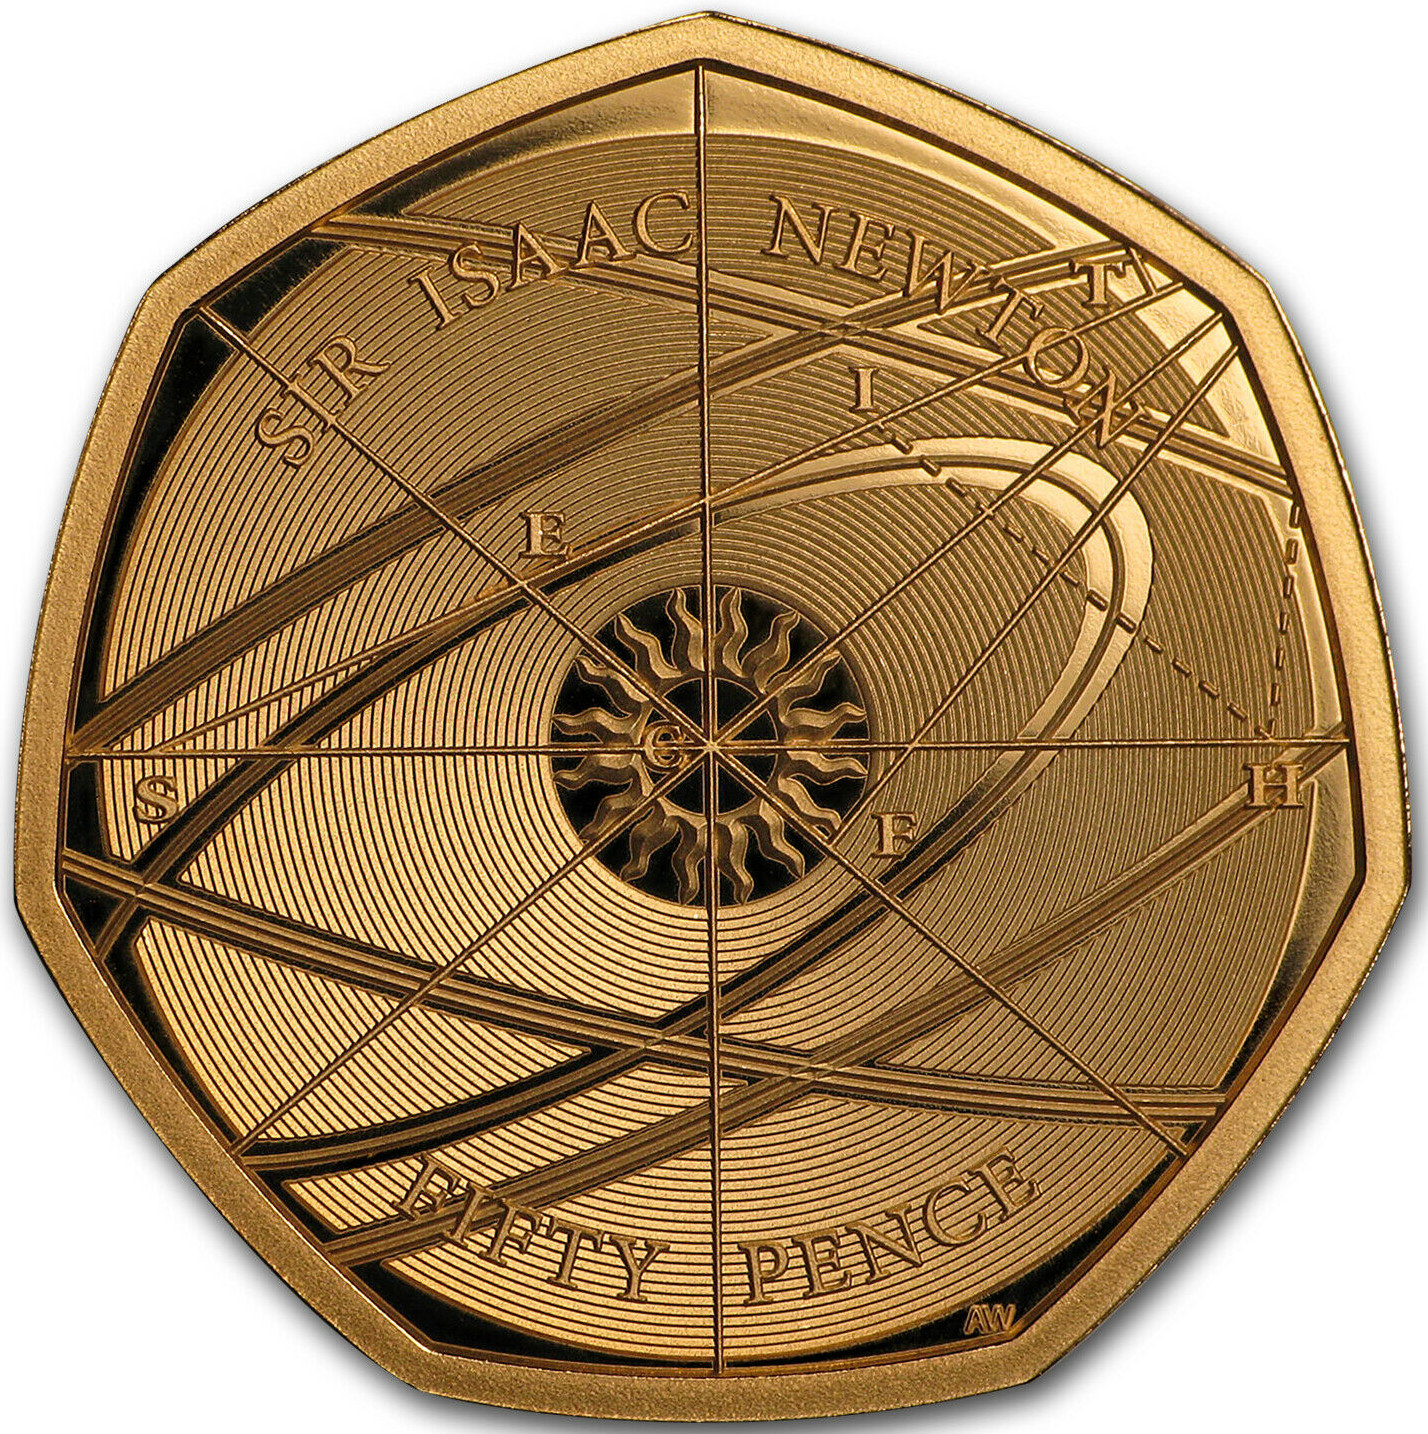 Fifty Pence 2017 Sir Isaac Newton: Photo 2017 UK Coin 50p Gold Proof Sir Isaac Newton